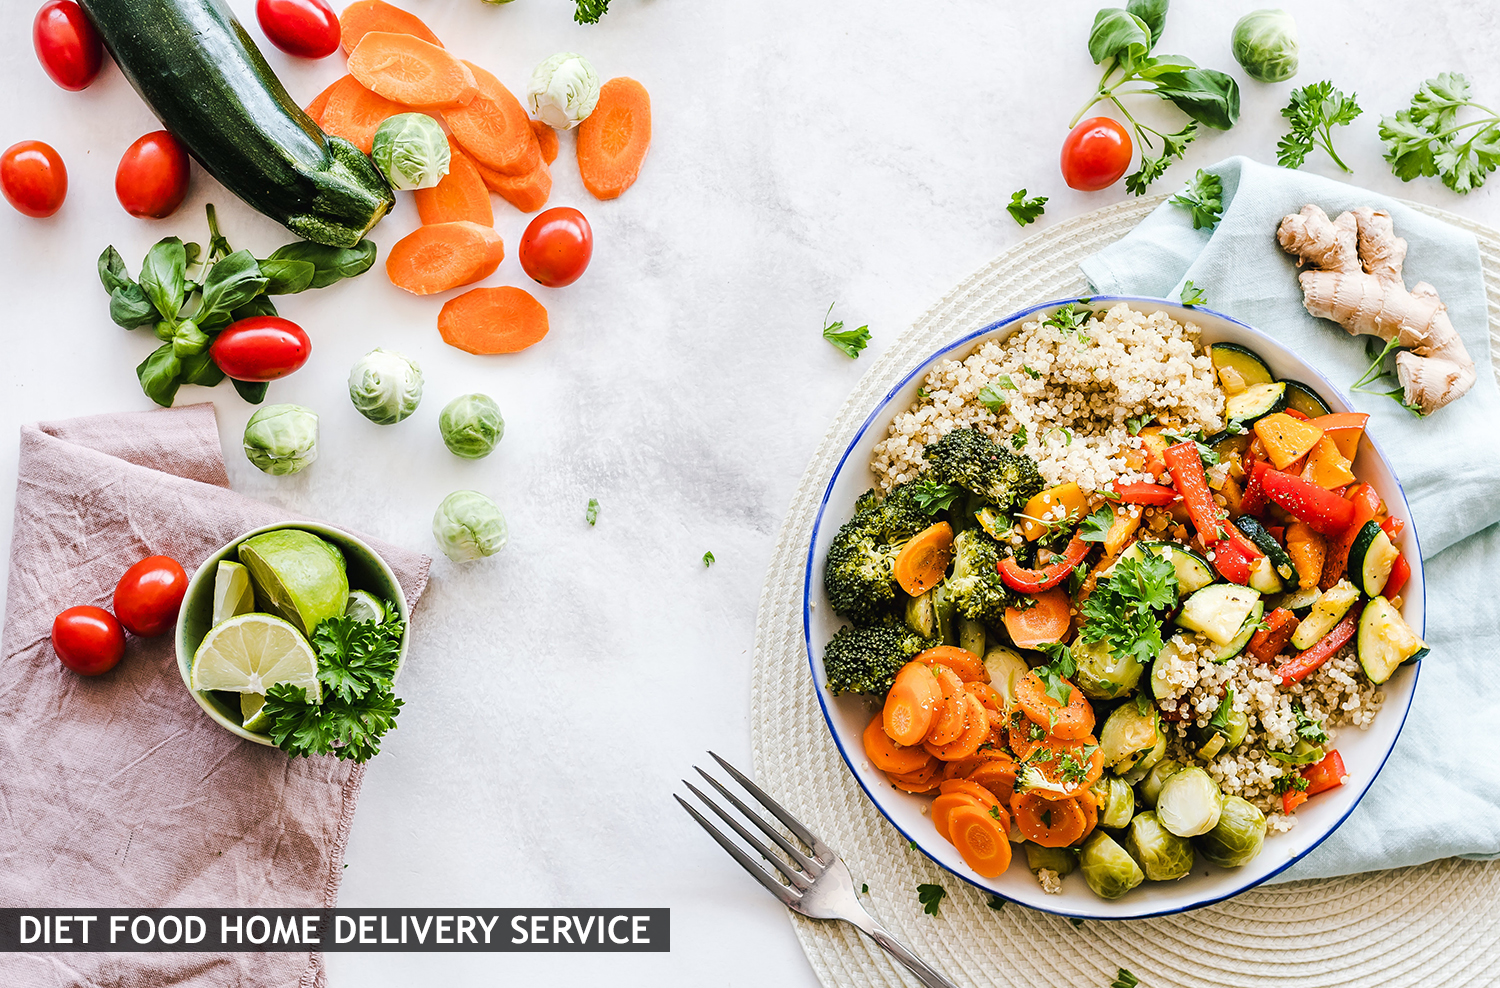 diet food home delivery service